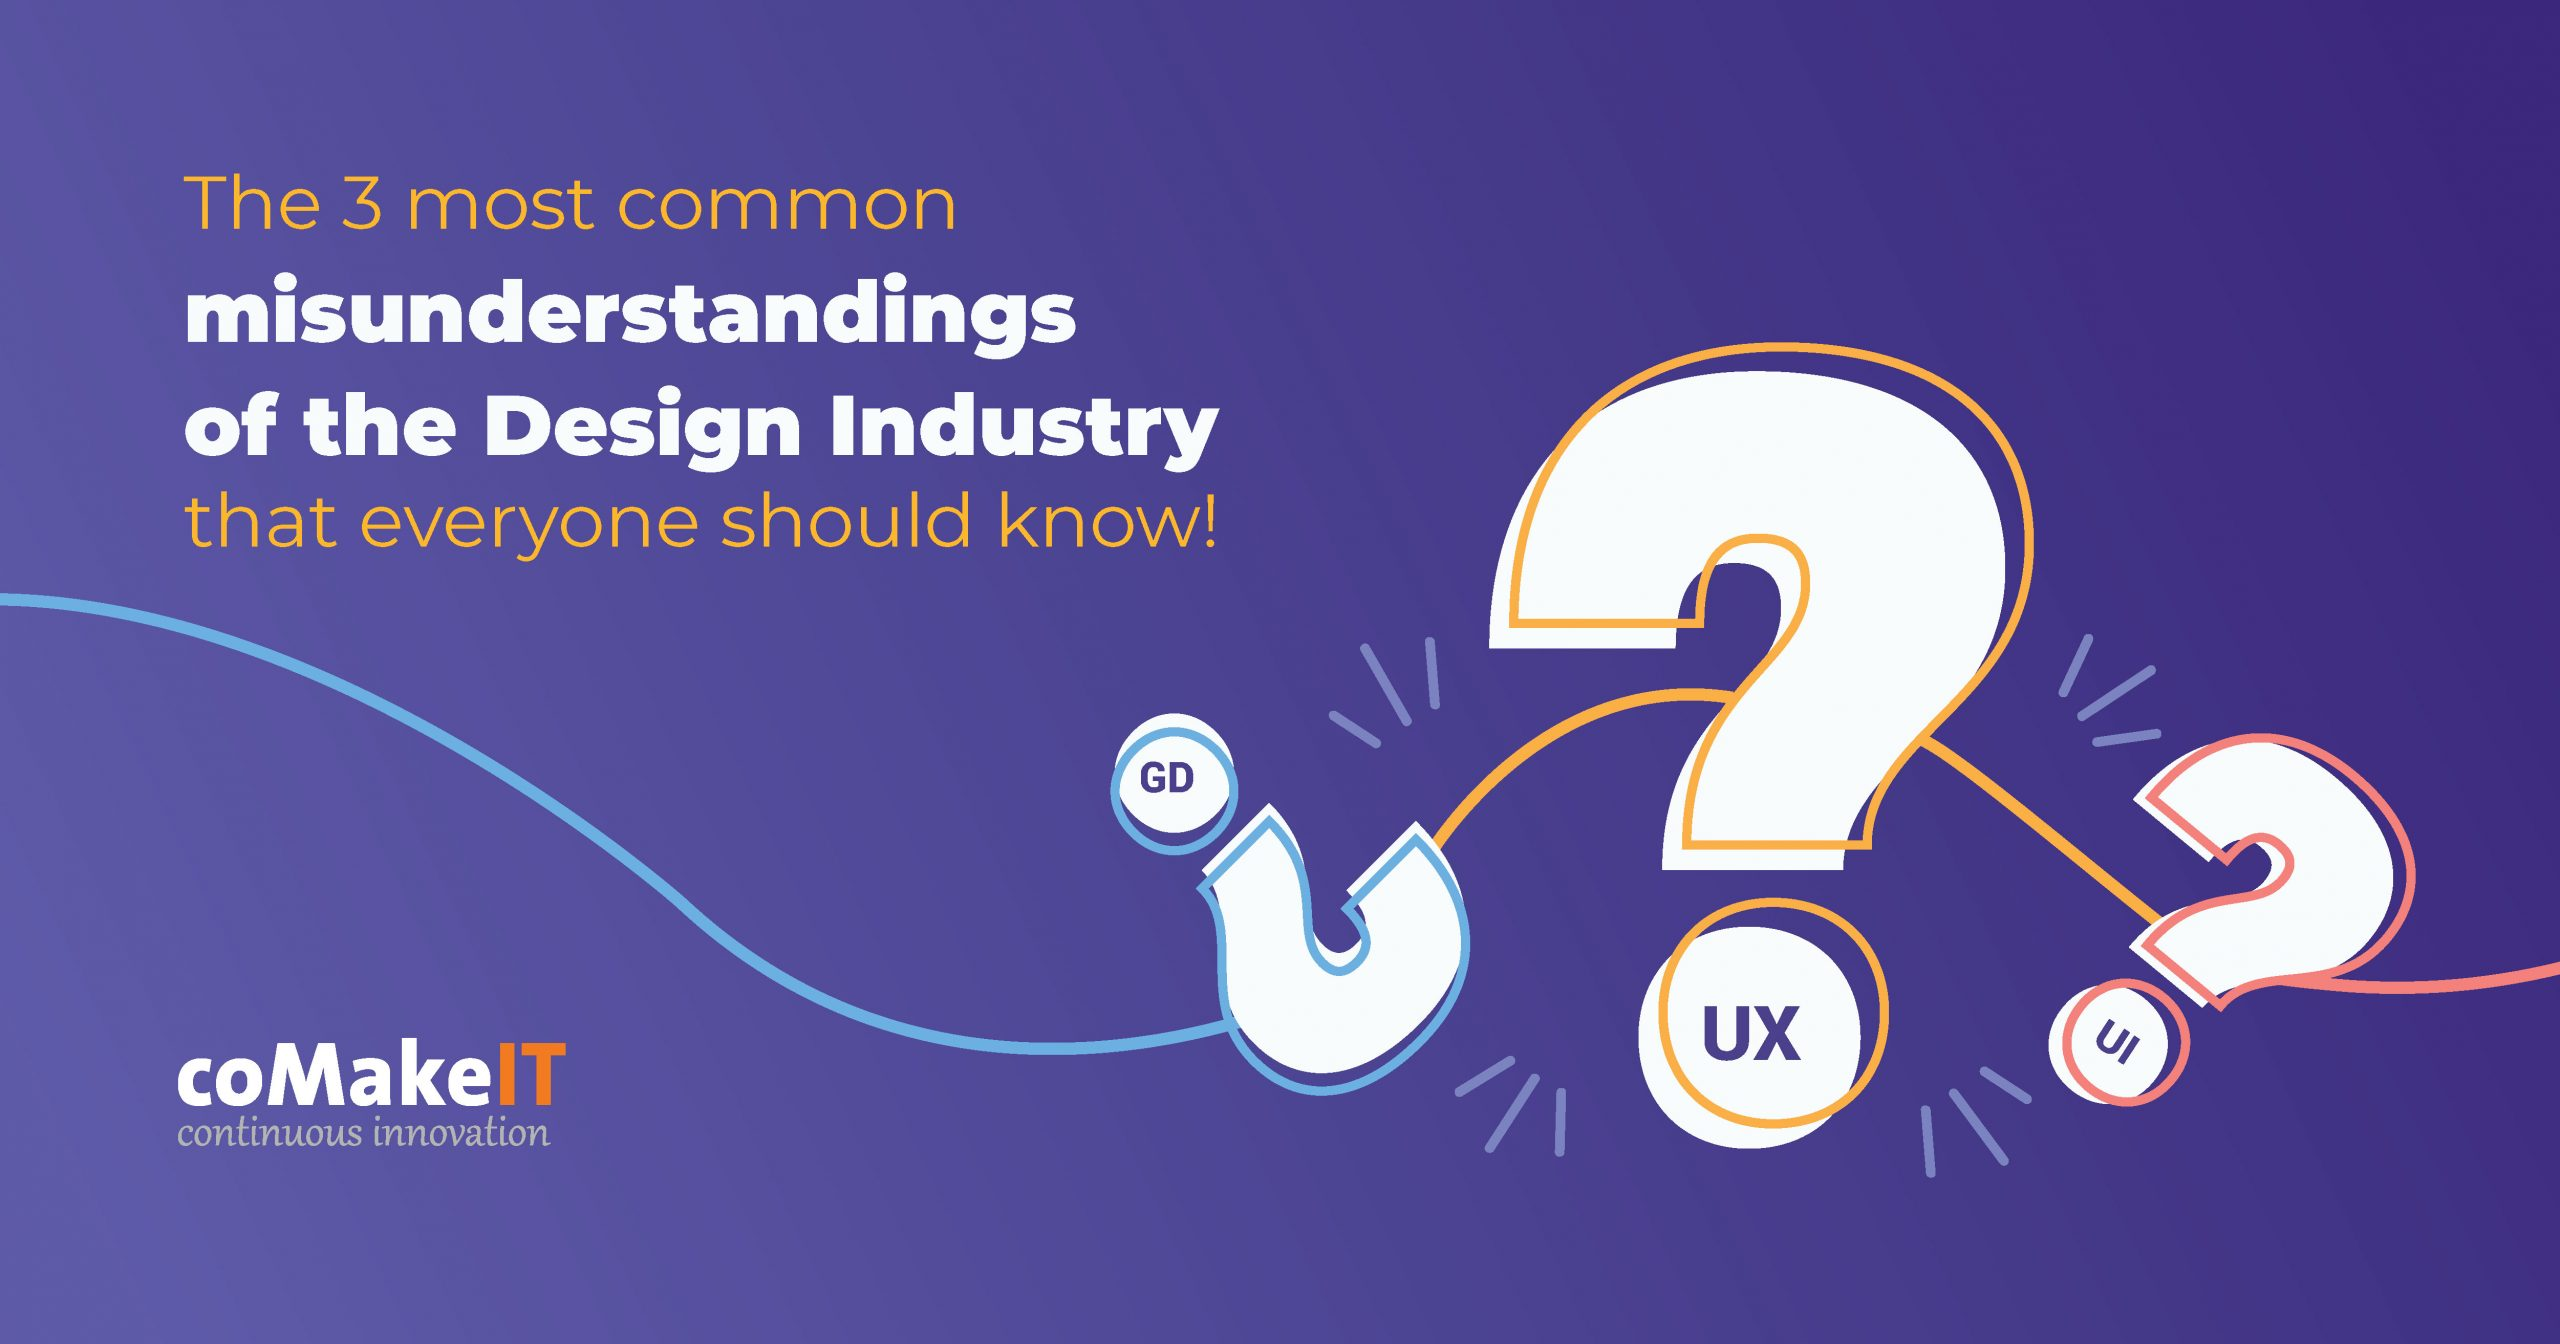 The 3 most common misunderstandings of the Design Industry that every one should know!